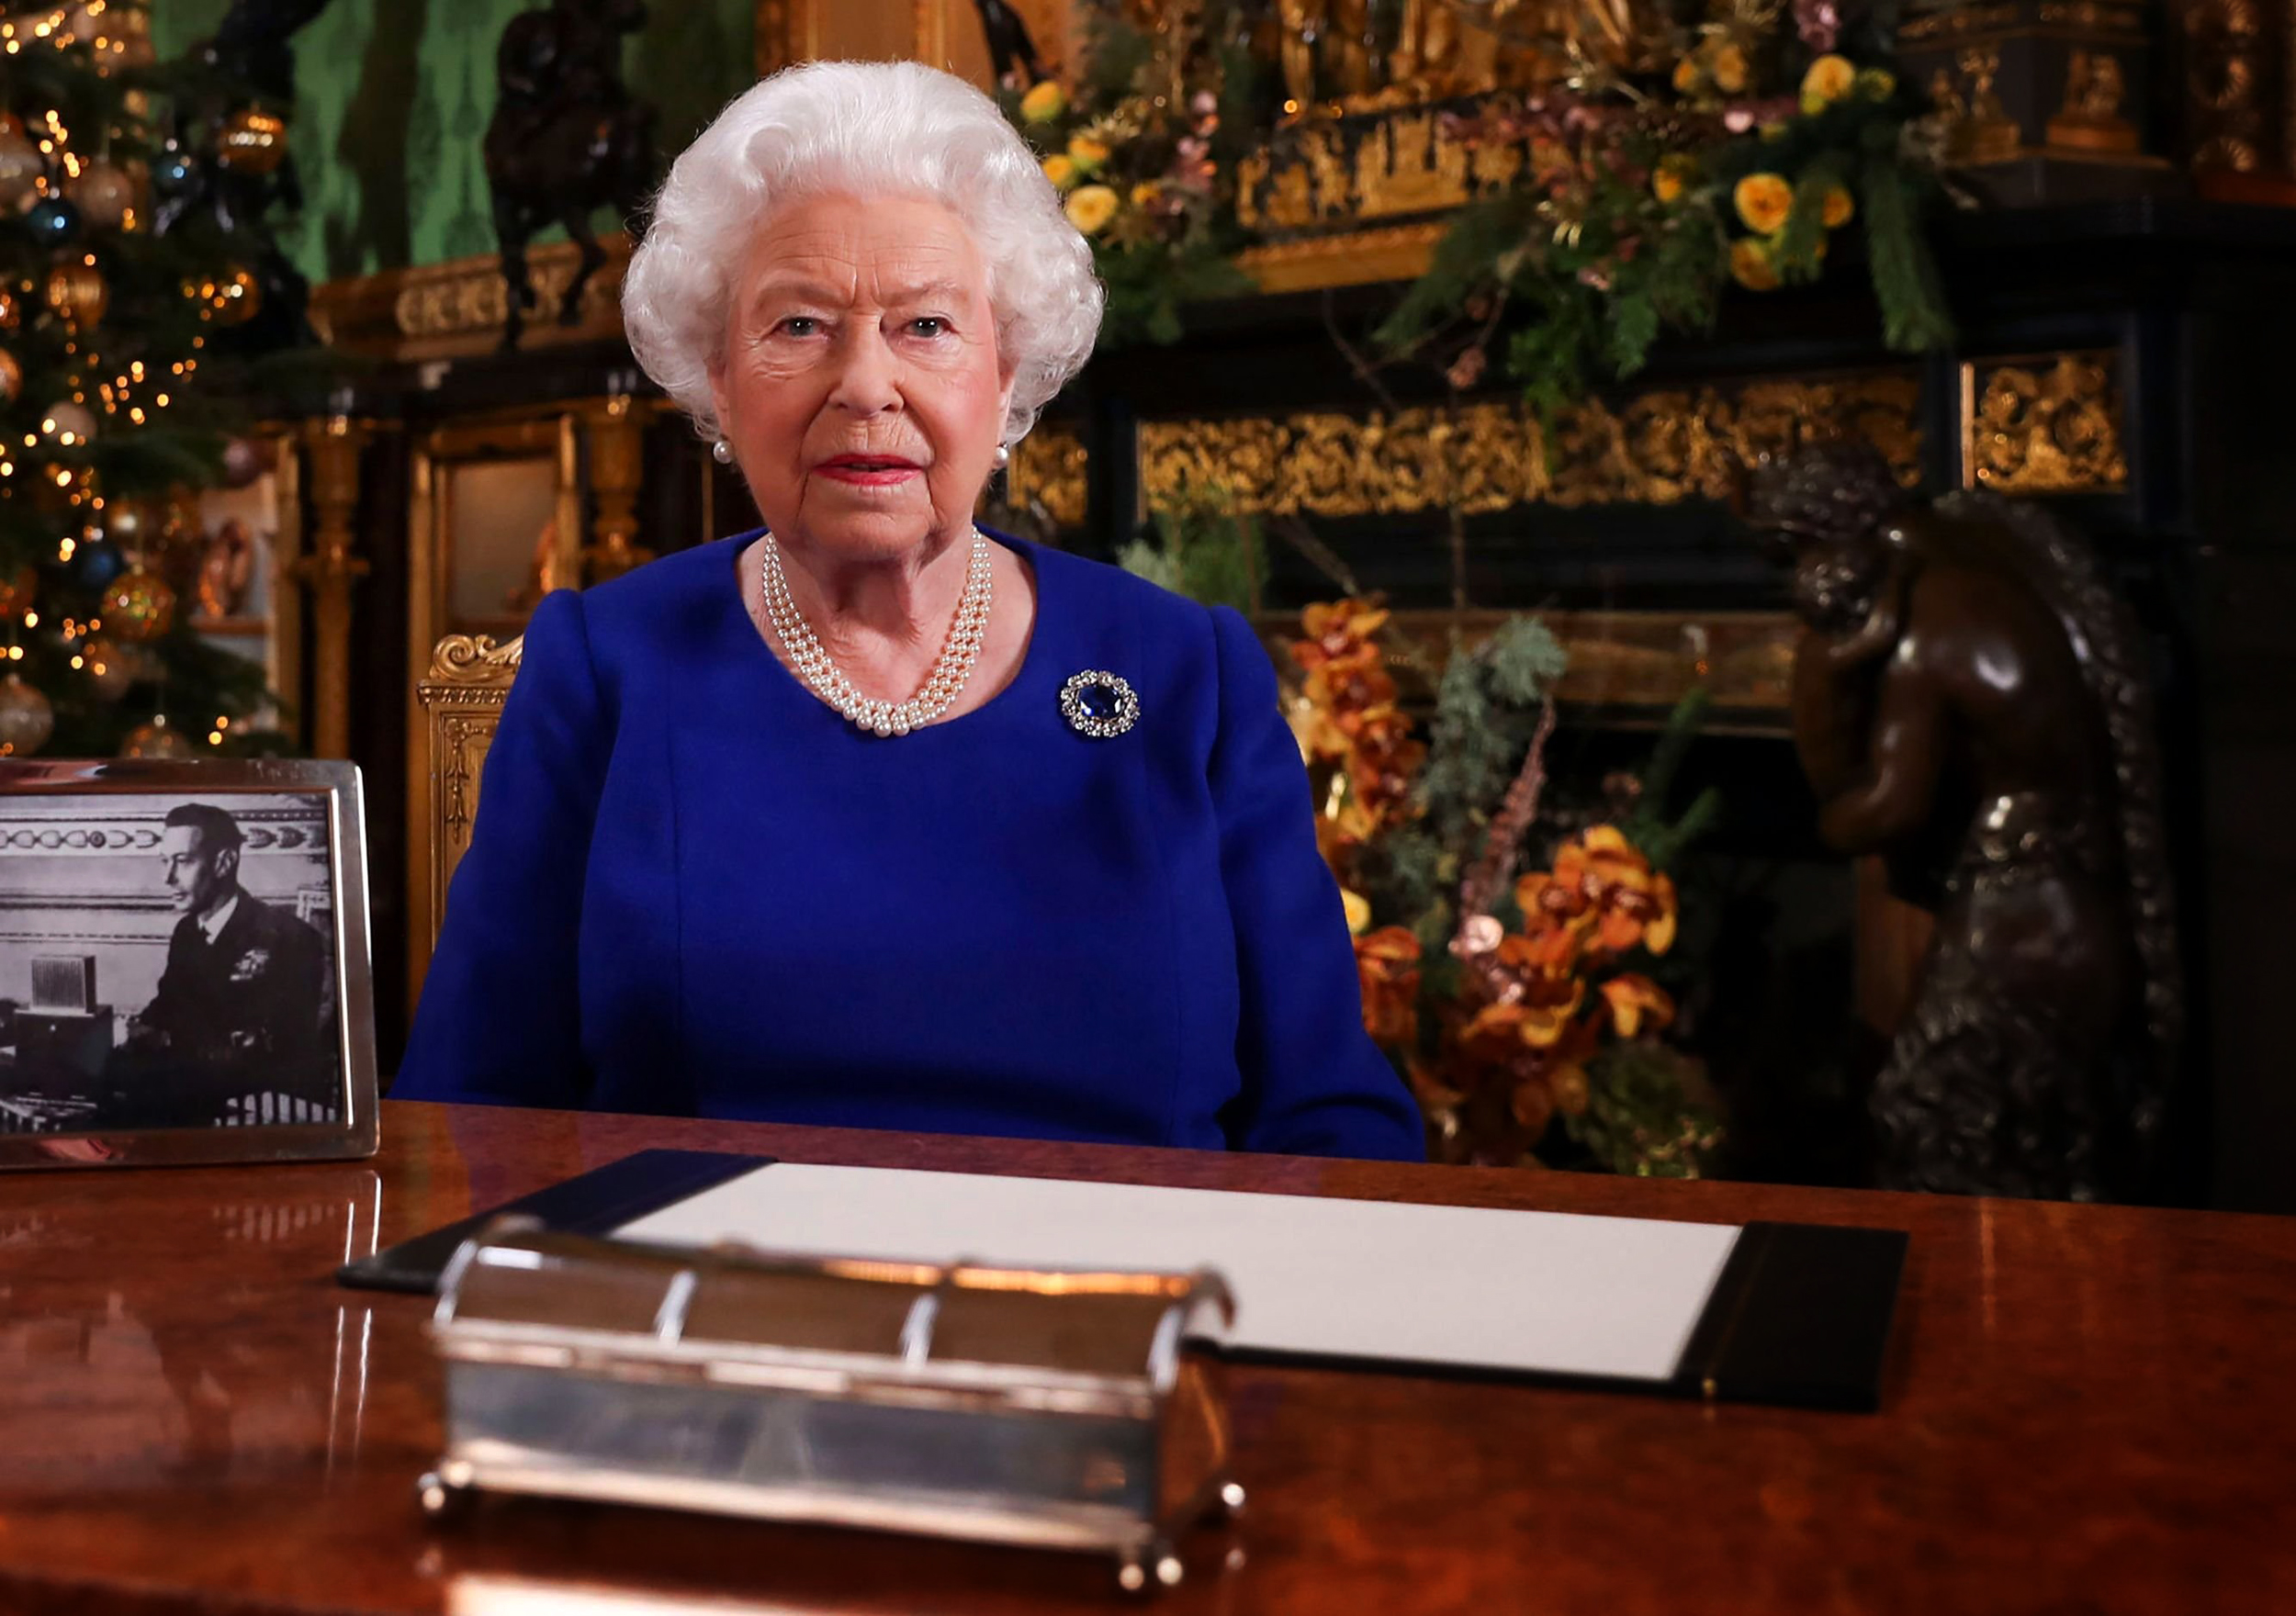 Time For Queen Elizabeth Christmas Speech 2020 Queen Elizabeth to give rare televised speech about the coronavirus